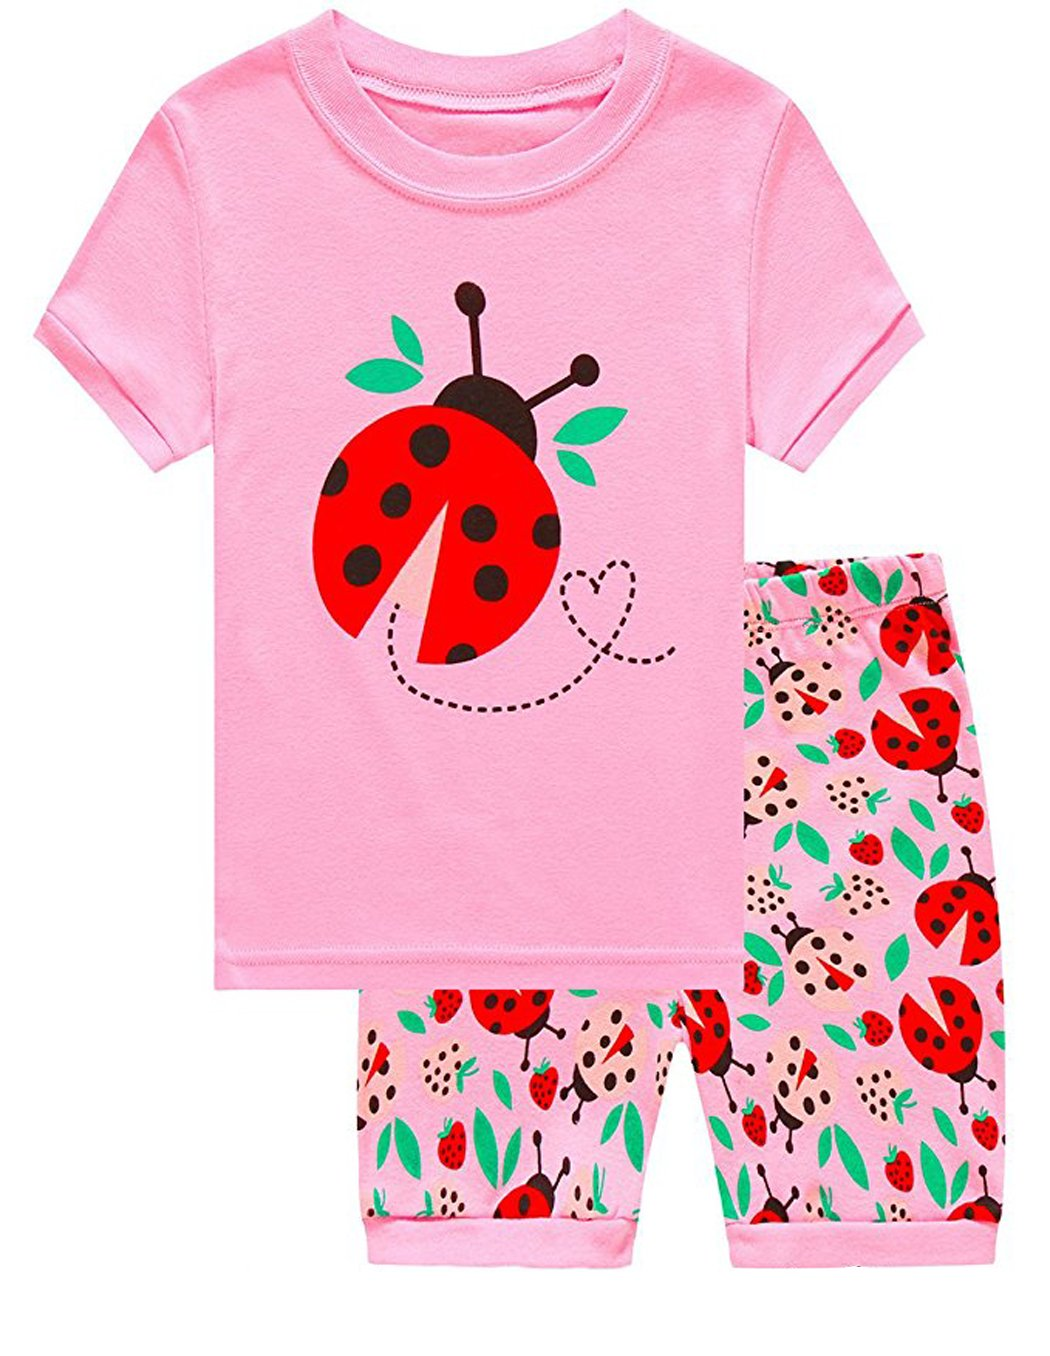 Dhasiue Girls Pajamas Toddler Kids Shorts Sets 100% Cotton Sleepwear Summer Clothes for Age 1-6 Years